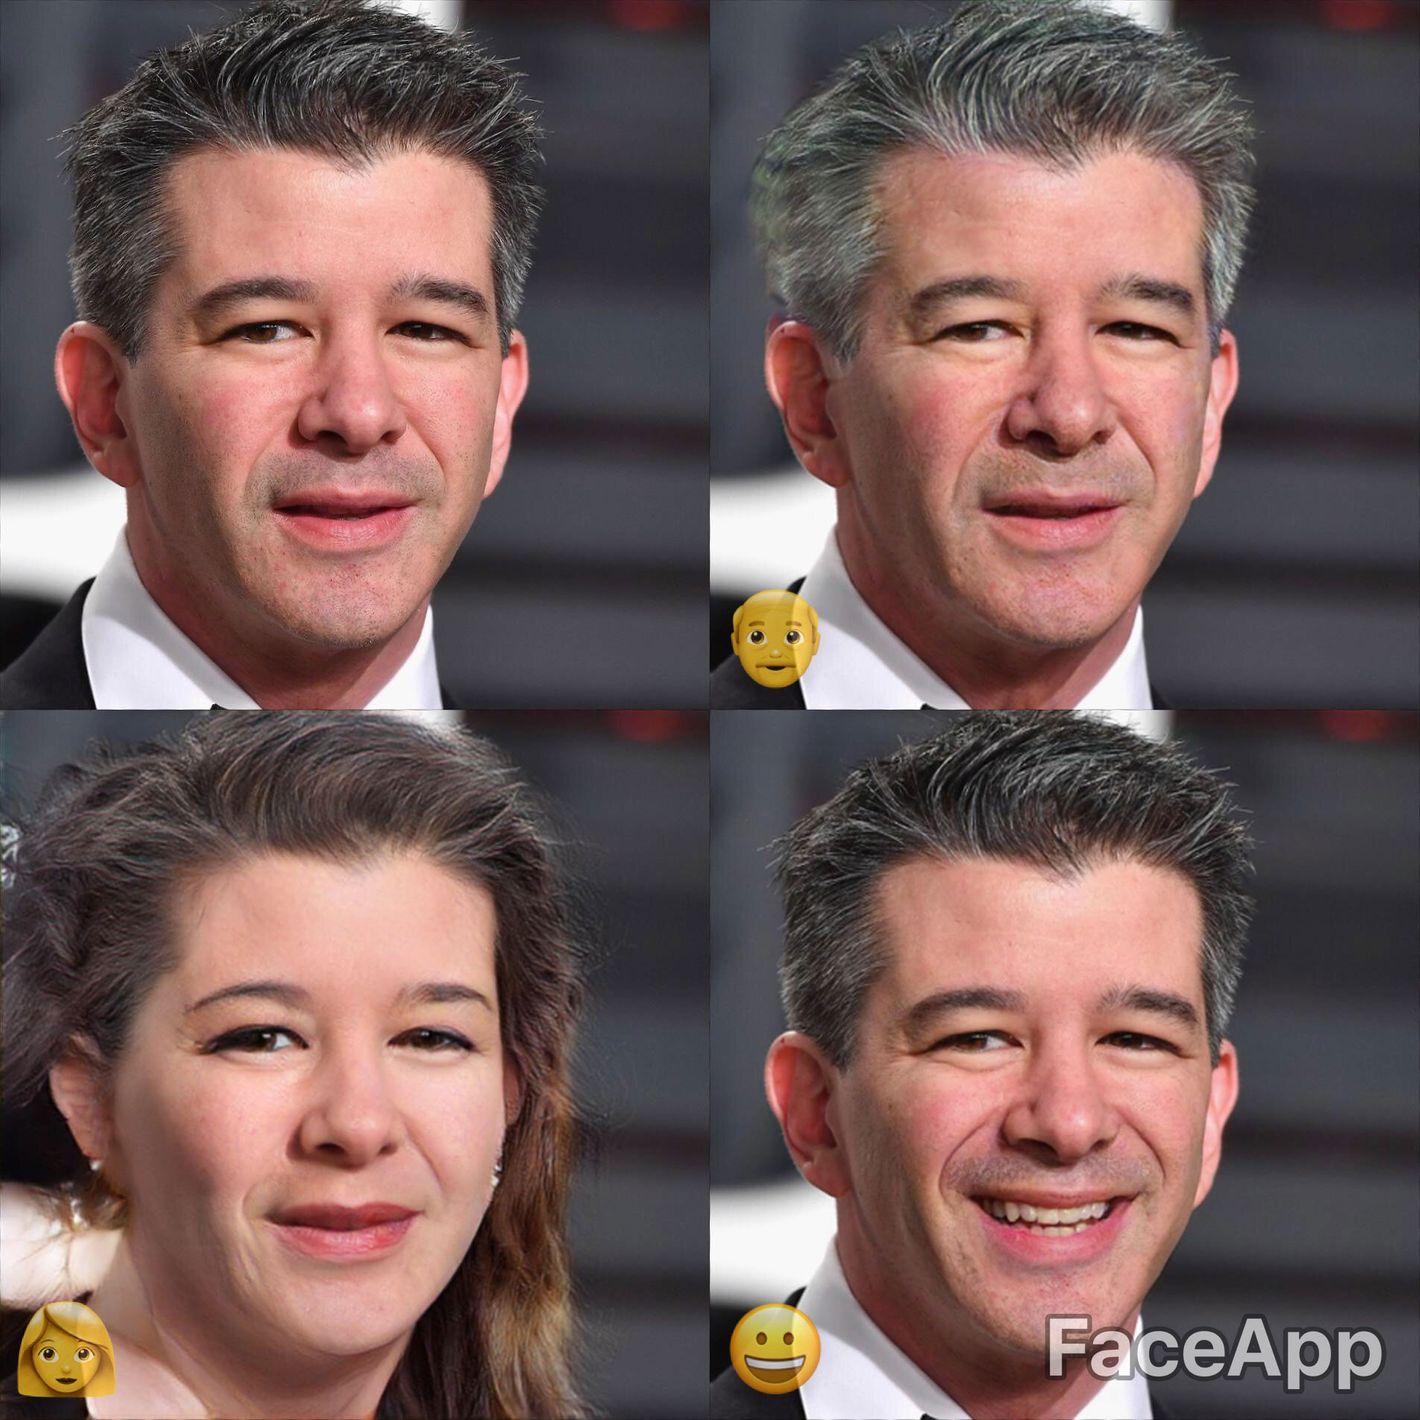 How to Use FaceApp Morphing App That Makes You Smile